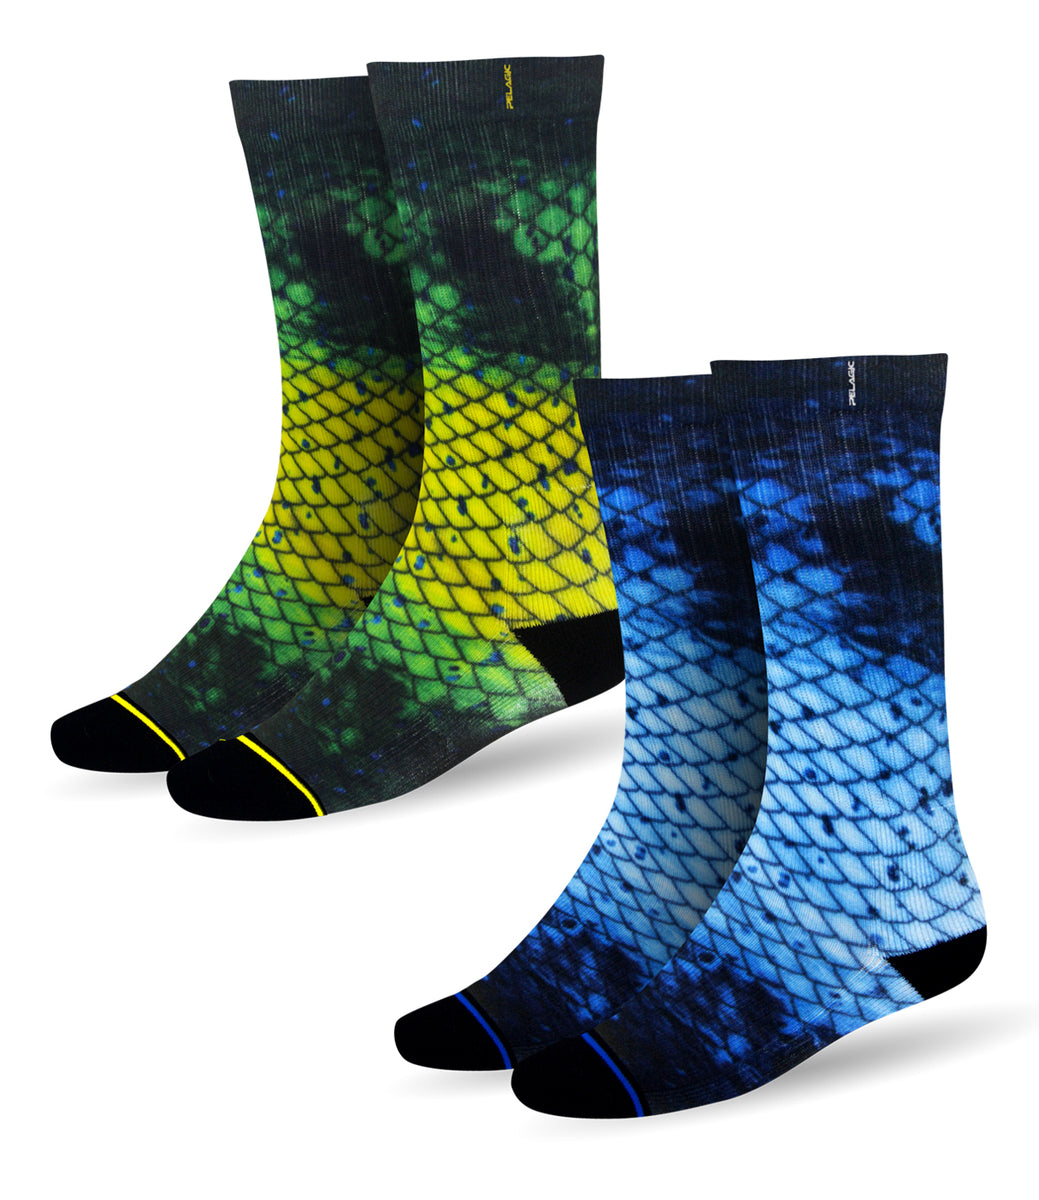 Proform Socks 2-Pack Dorado Big Image - 1